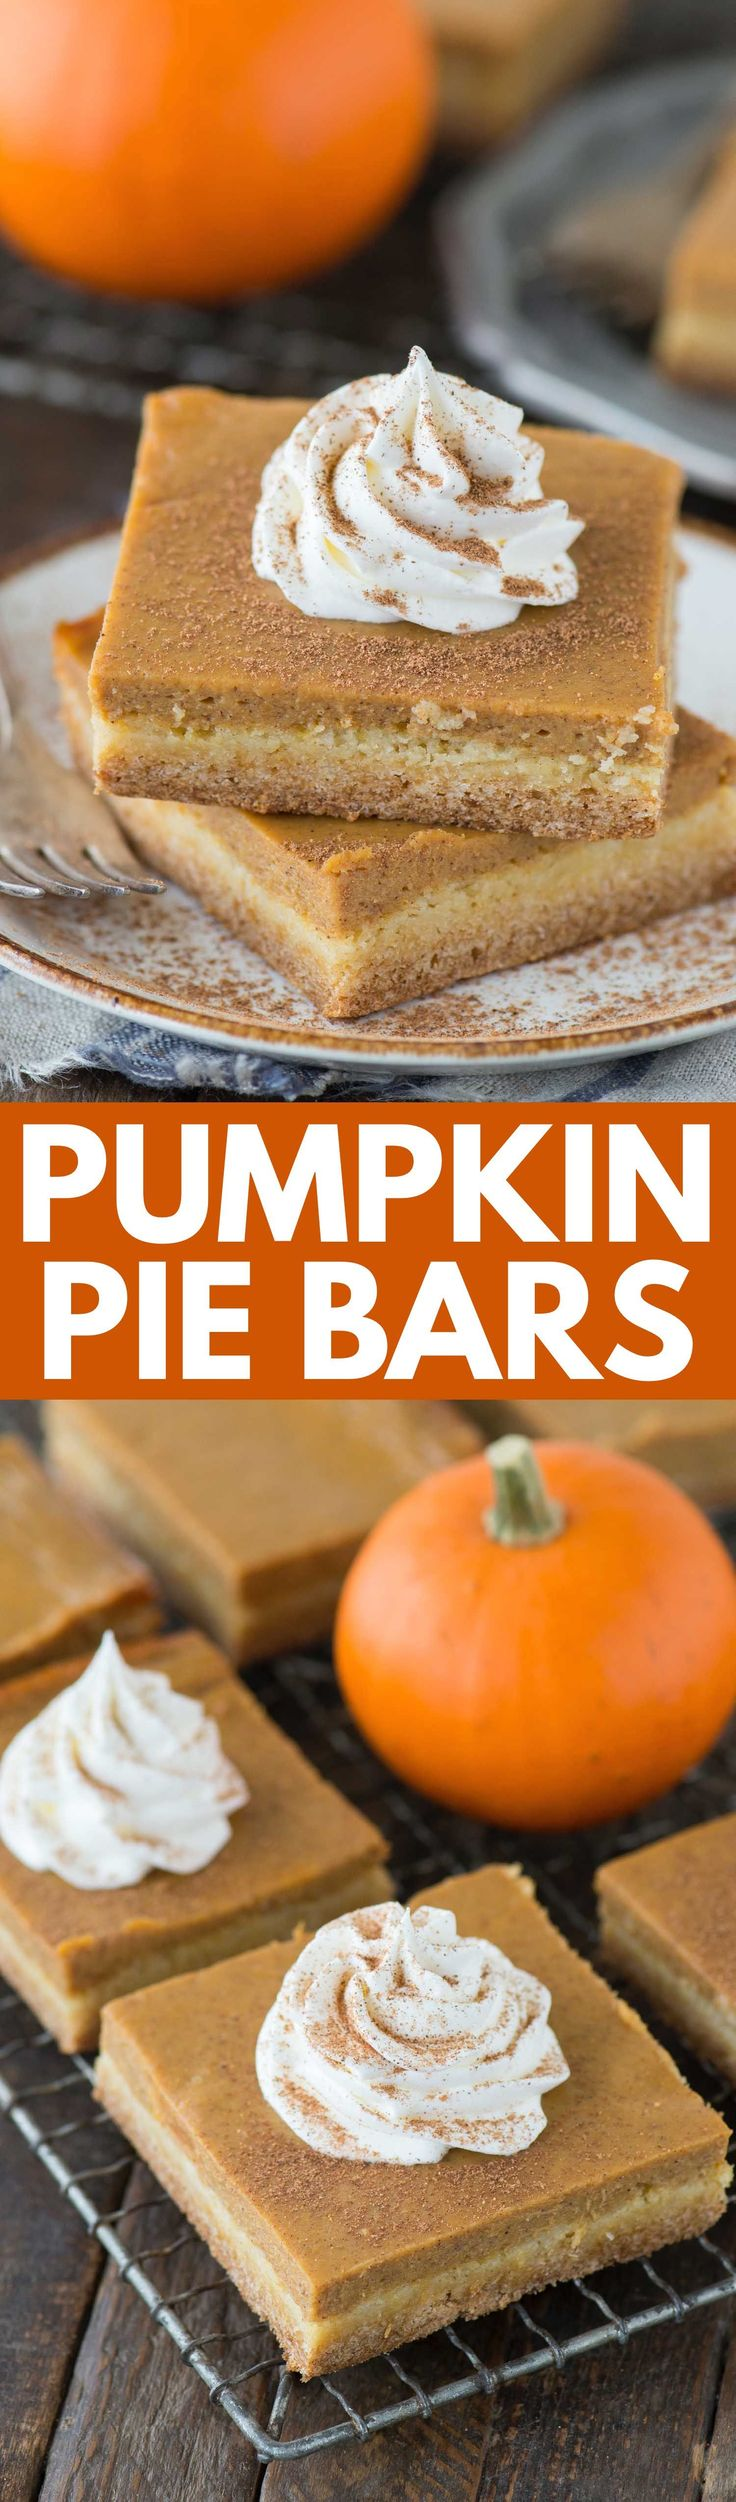 Easy pumpkin pie bars with a classic pumpkin pie filling and a 2 ingredient cake mix crust. Made in a 9x13 inch pan, these pumpkin pie bars are amazing!